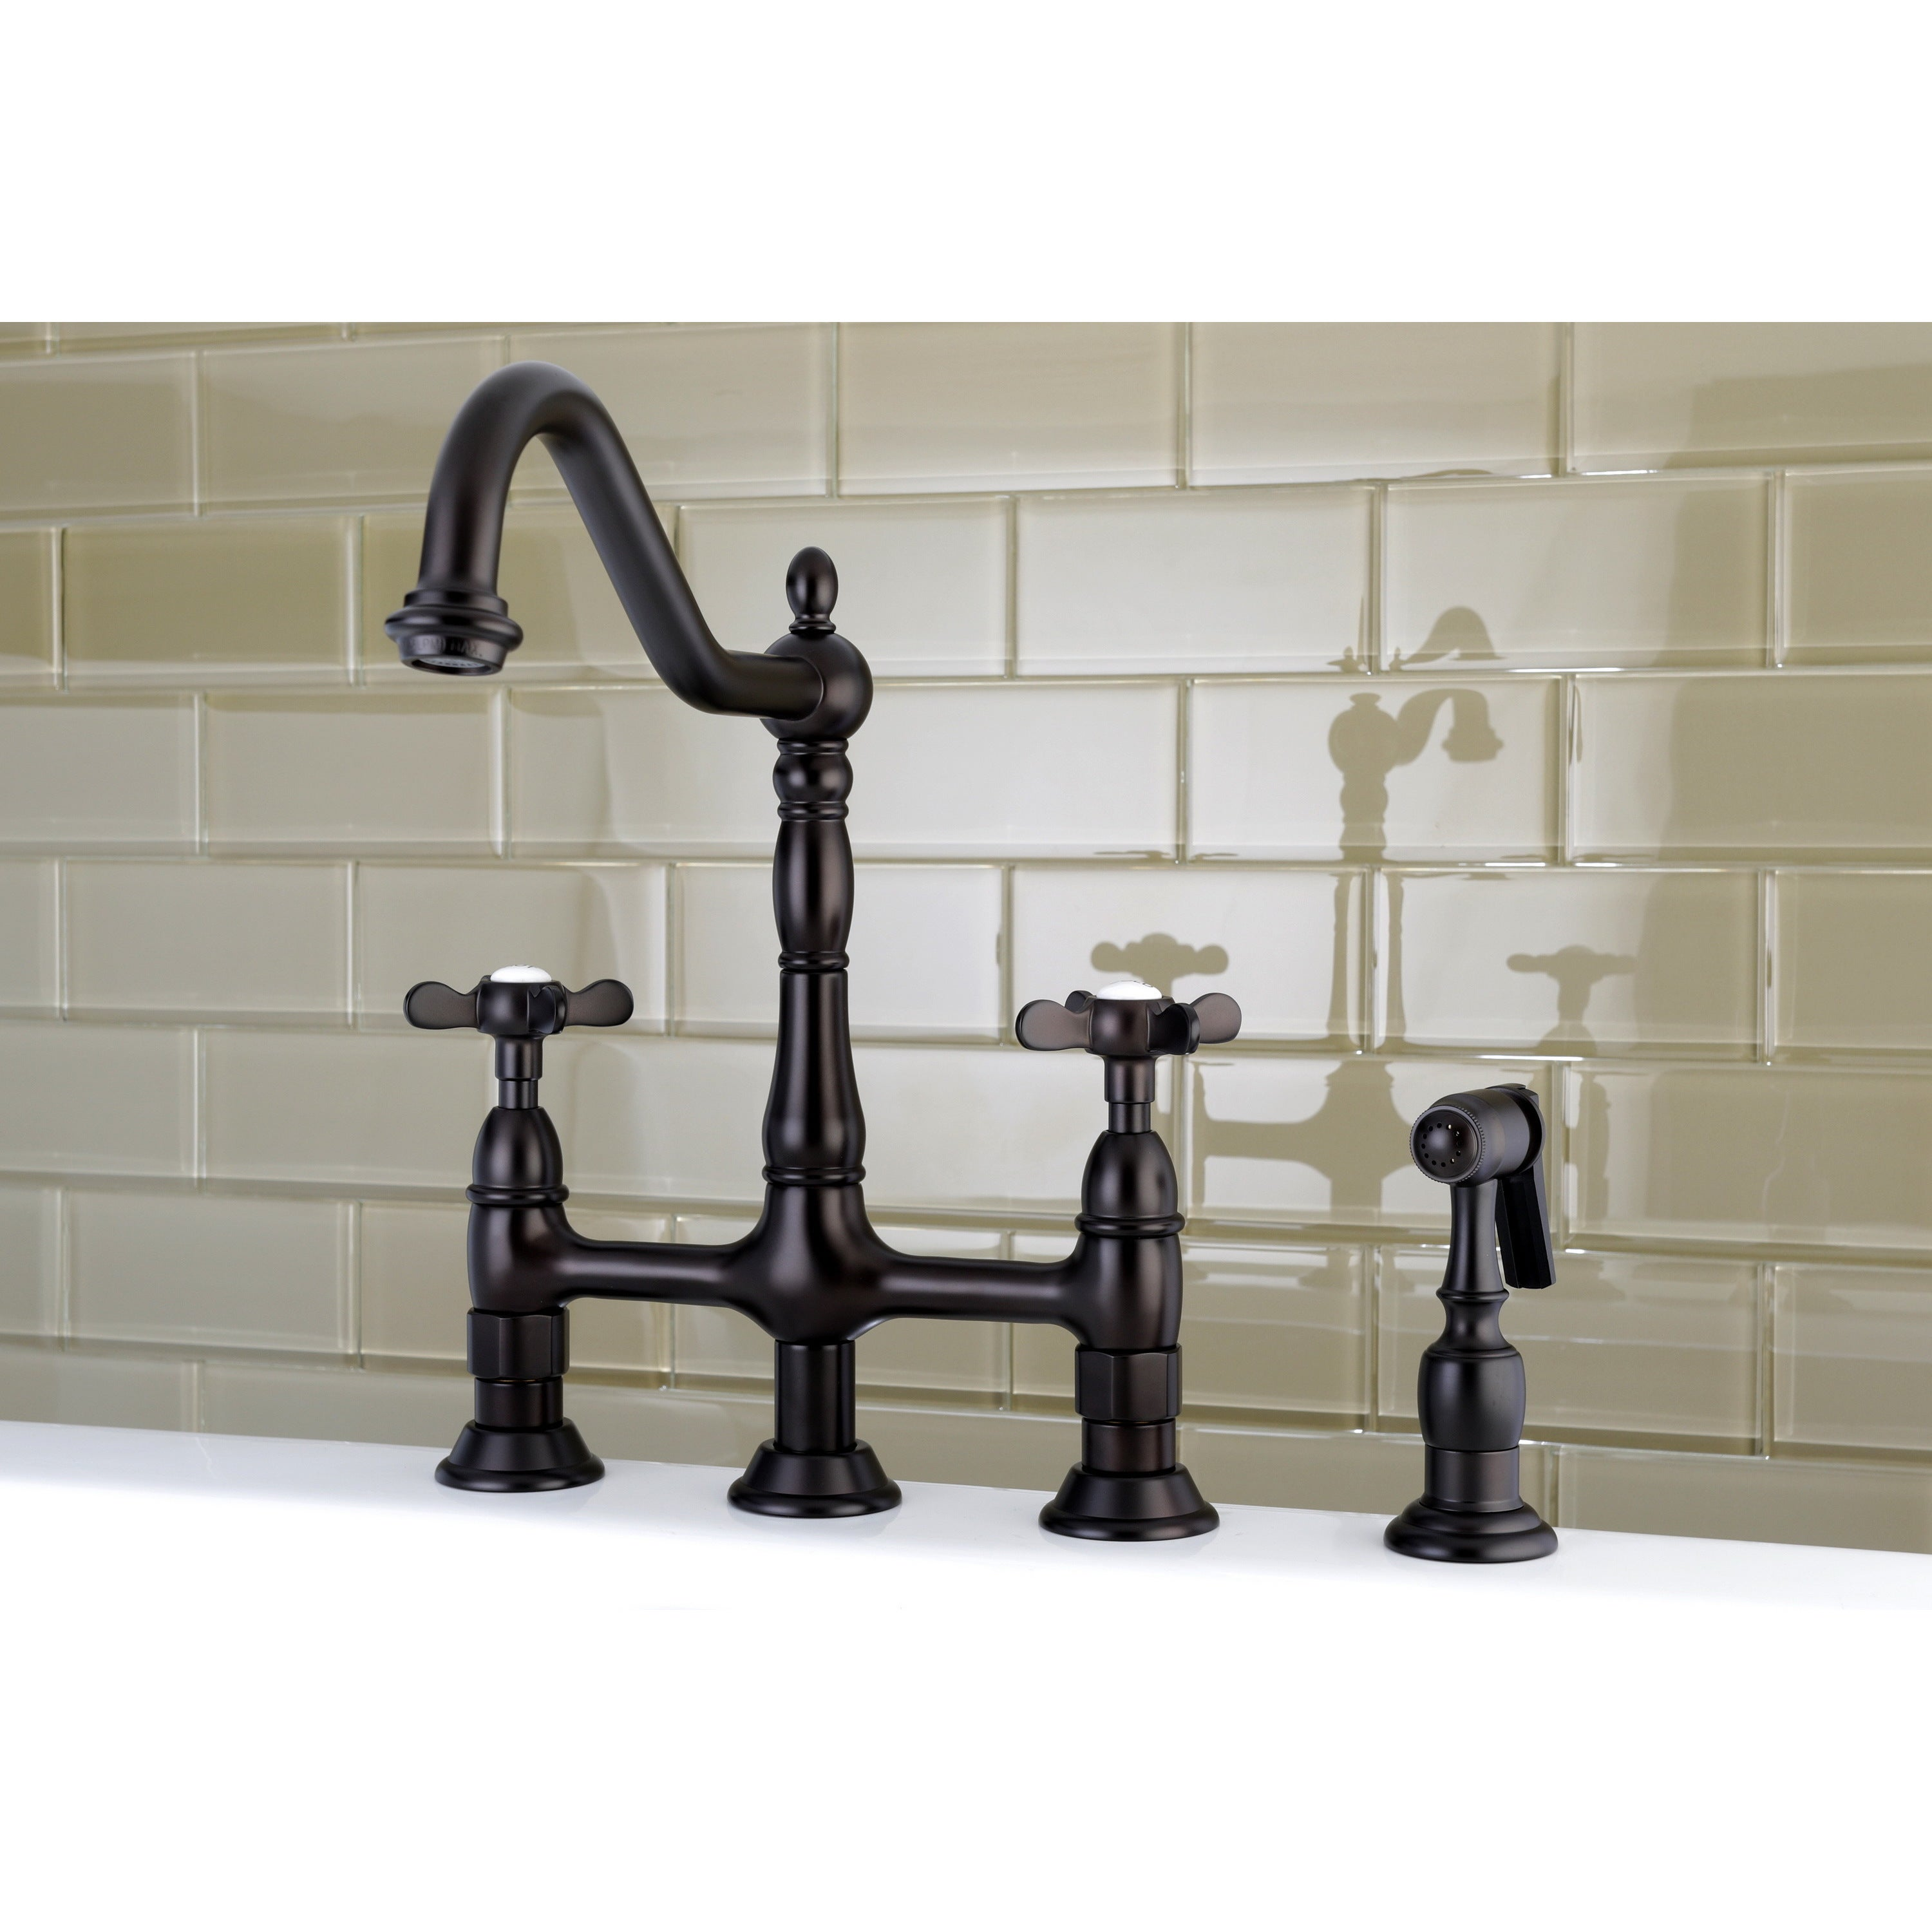 pc spray gpm supply bridge widespread product kitchen co consolidated faucets with artesso faucet hr brizo delta